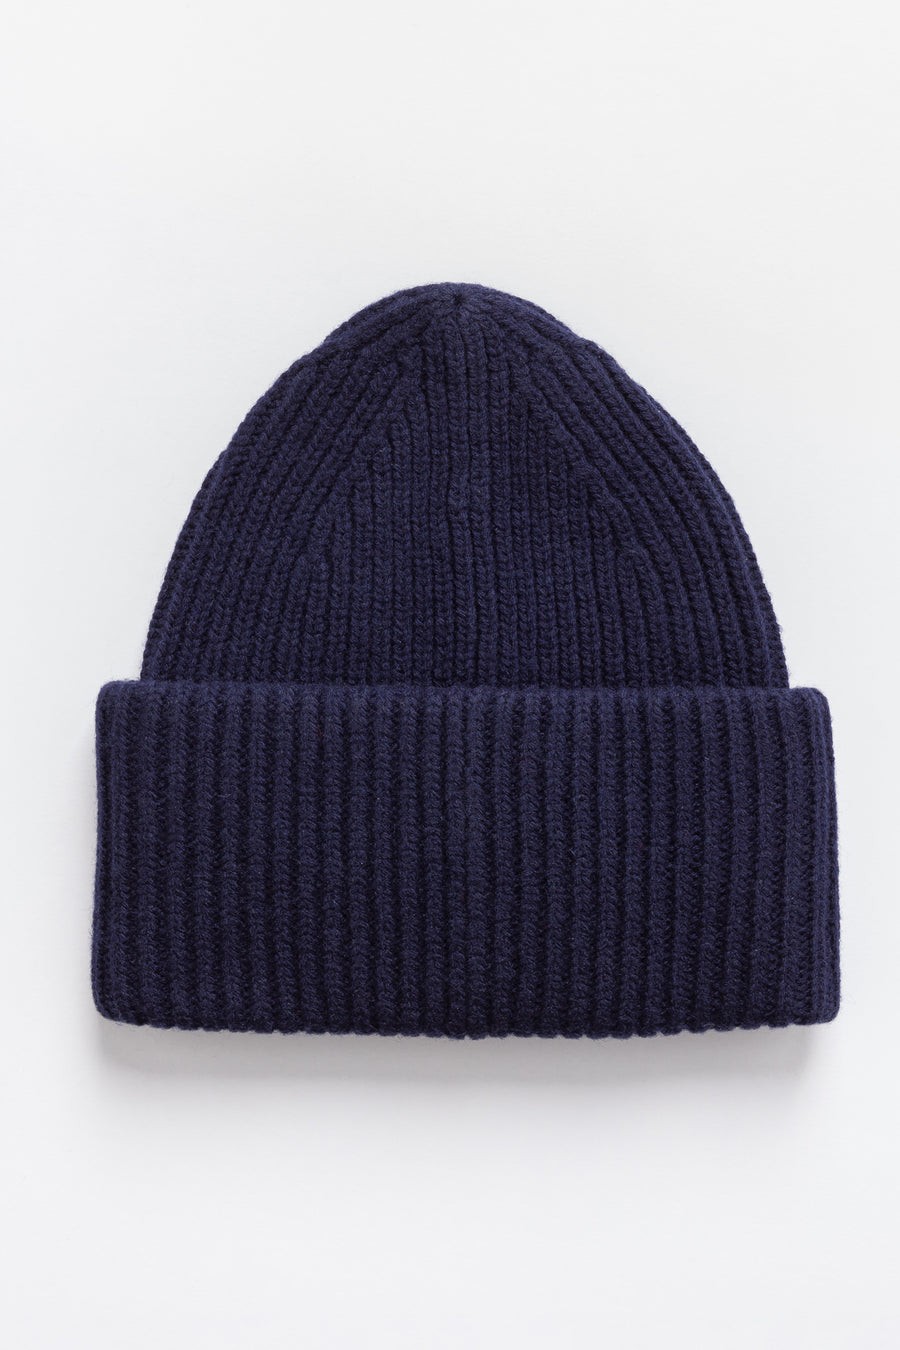 Acne Studios Pansy N Face Hat in Navy - Notre